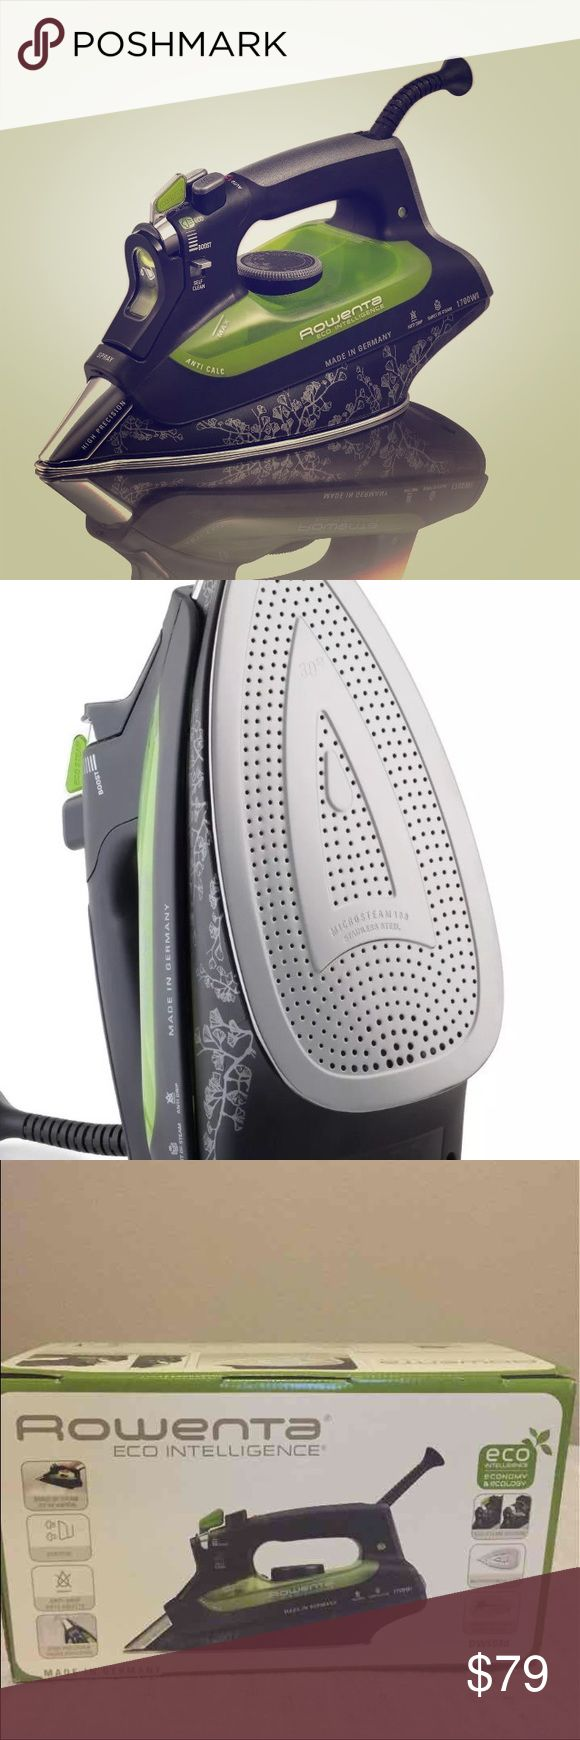 Cleaning rowenta pressure iron and steamer - Rowenta Eco Intelligence Iron Steamer Rowenta Ego Intelligence Iron Also Steamer Brand New